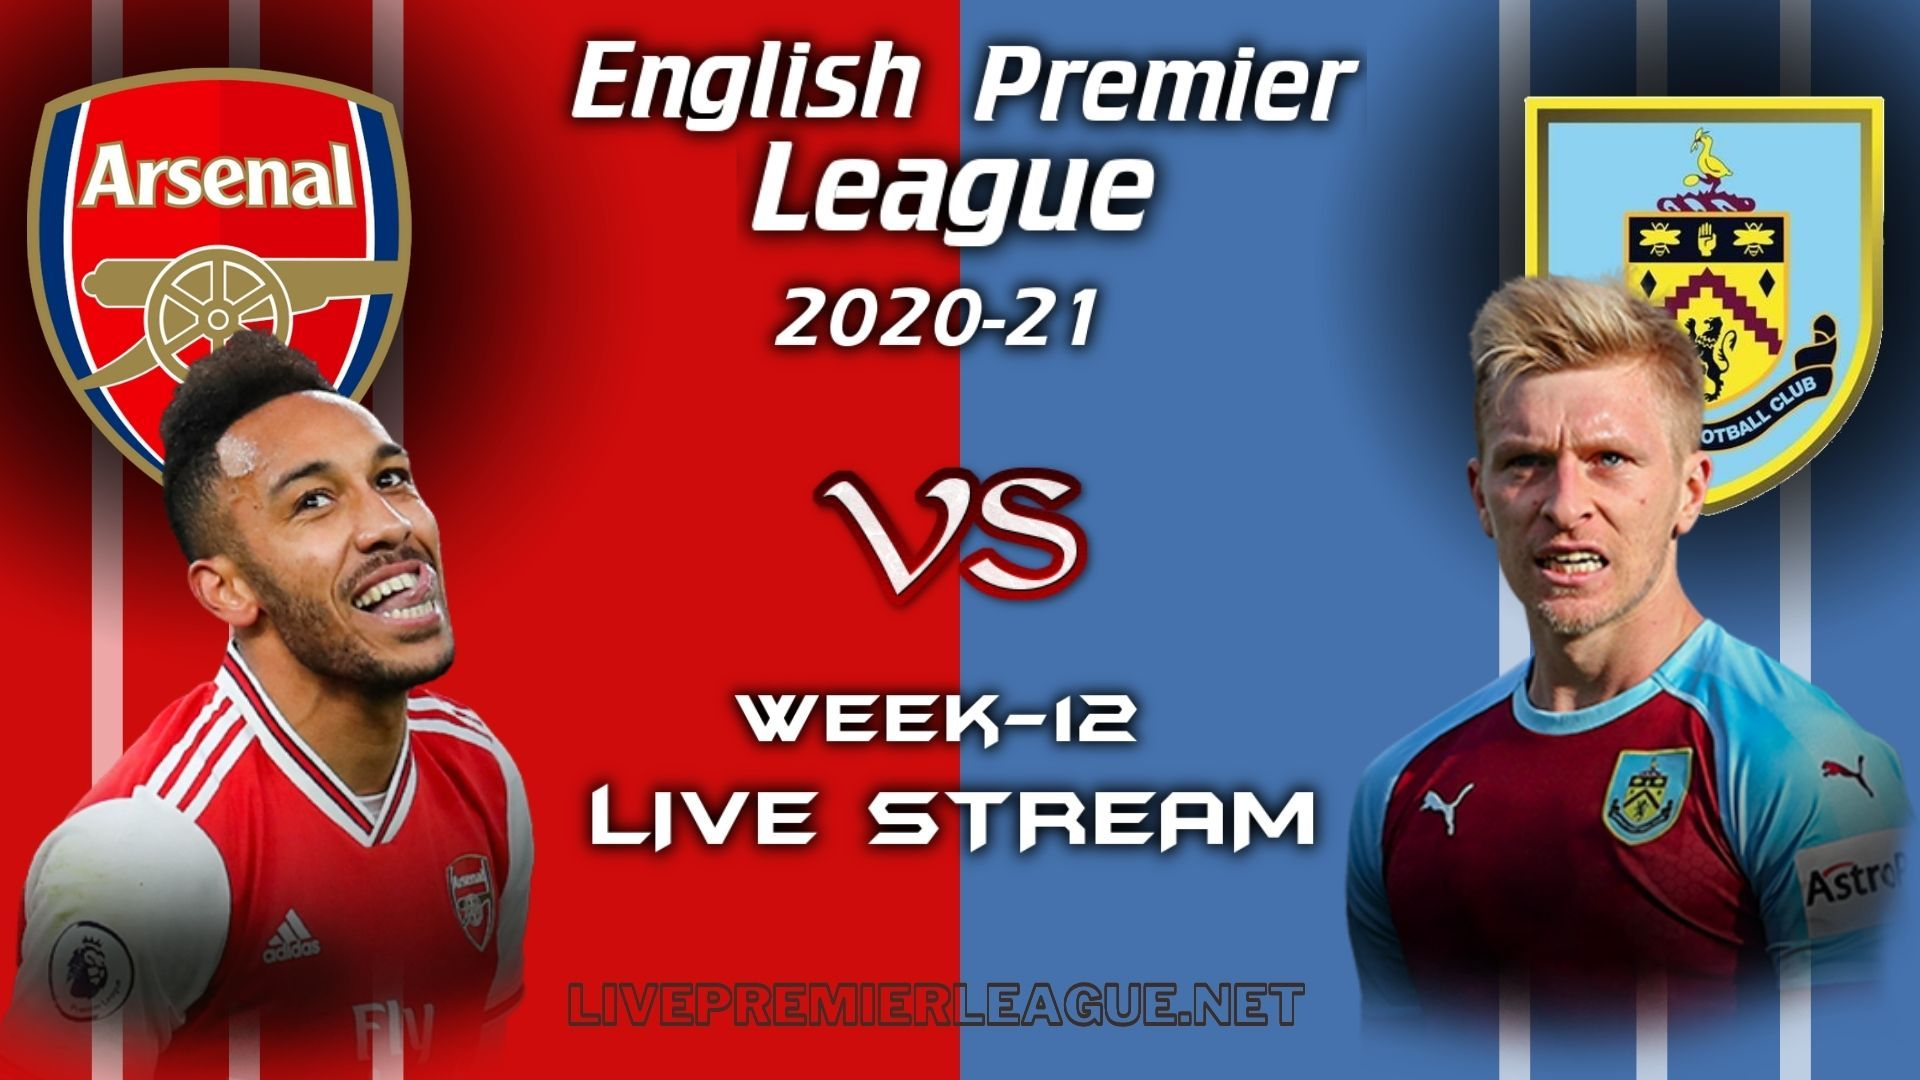 Arsenal Vs Burnley Live Stream 2020 Week 12 Arsenal Vs Manchester United Burnley Upcoming Matches